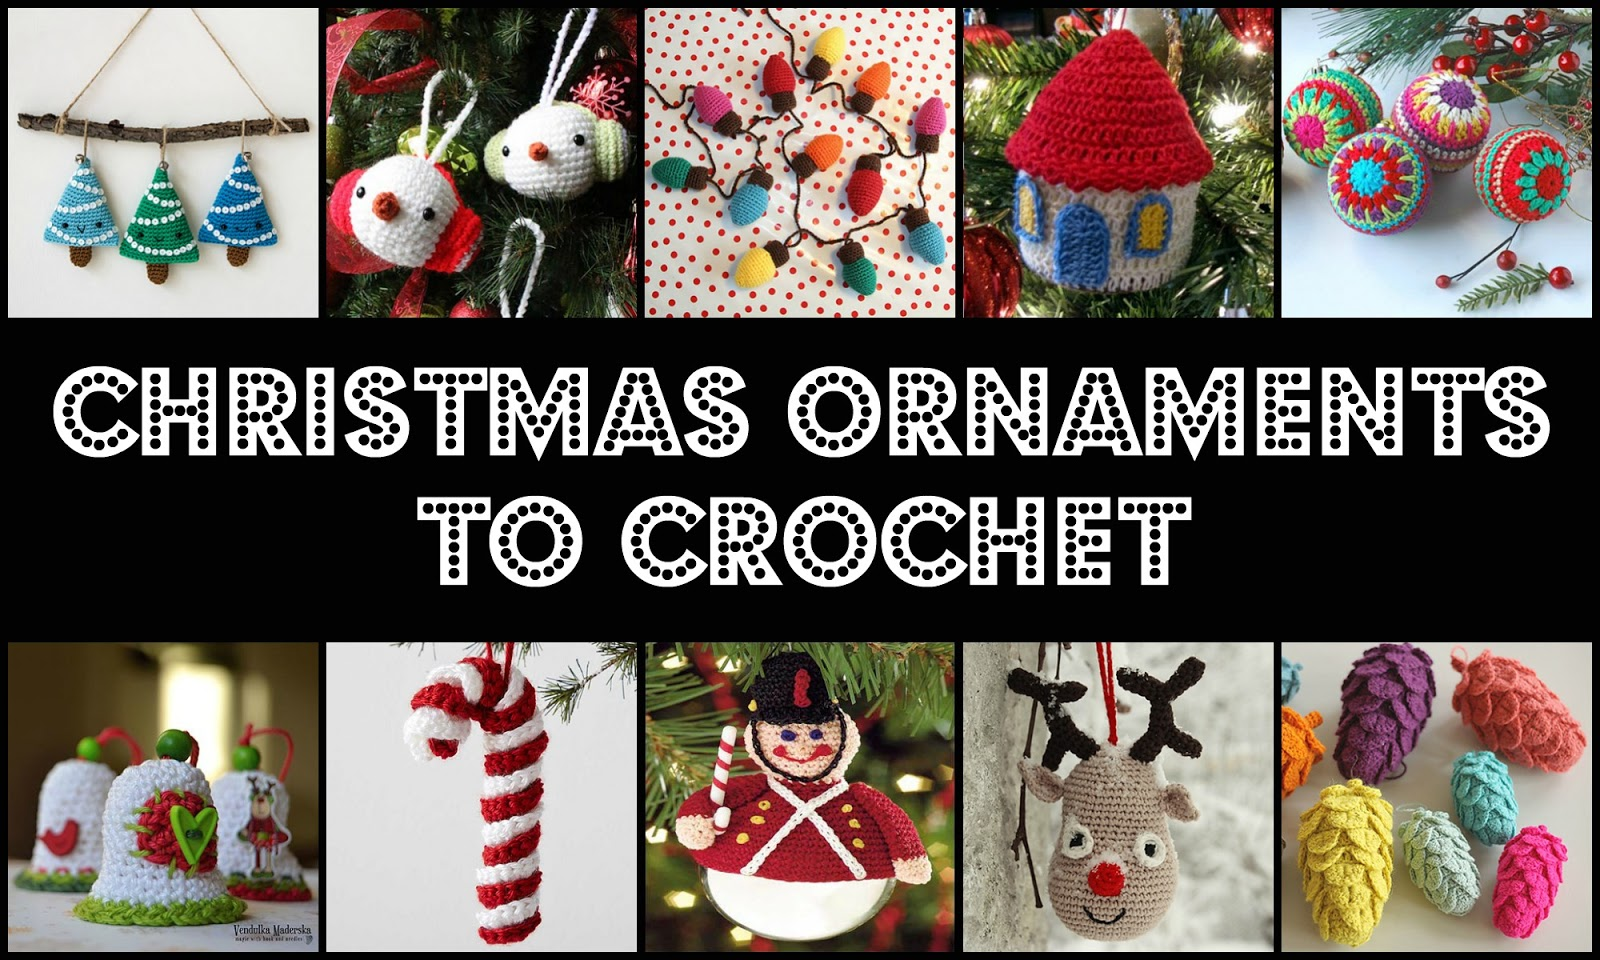 Crochet Treasures: 20 Free Christmas Ornaments Crochet Patterns